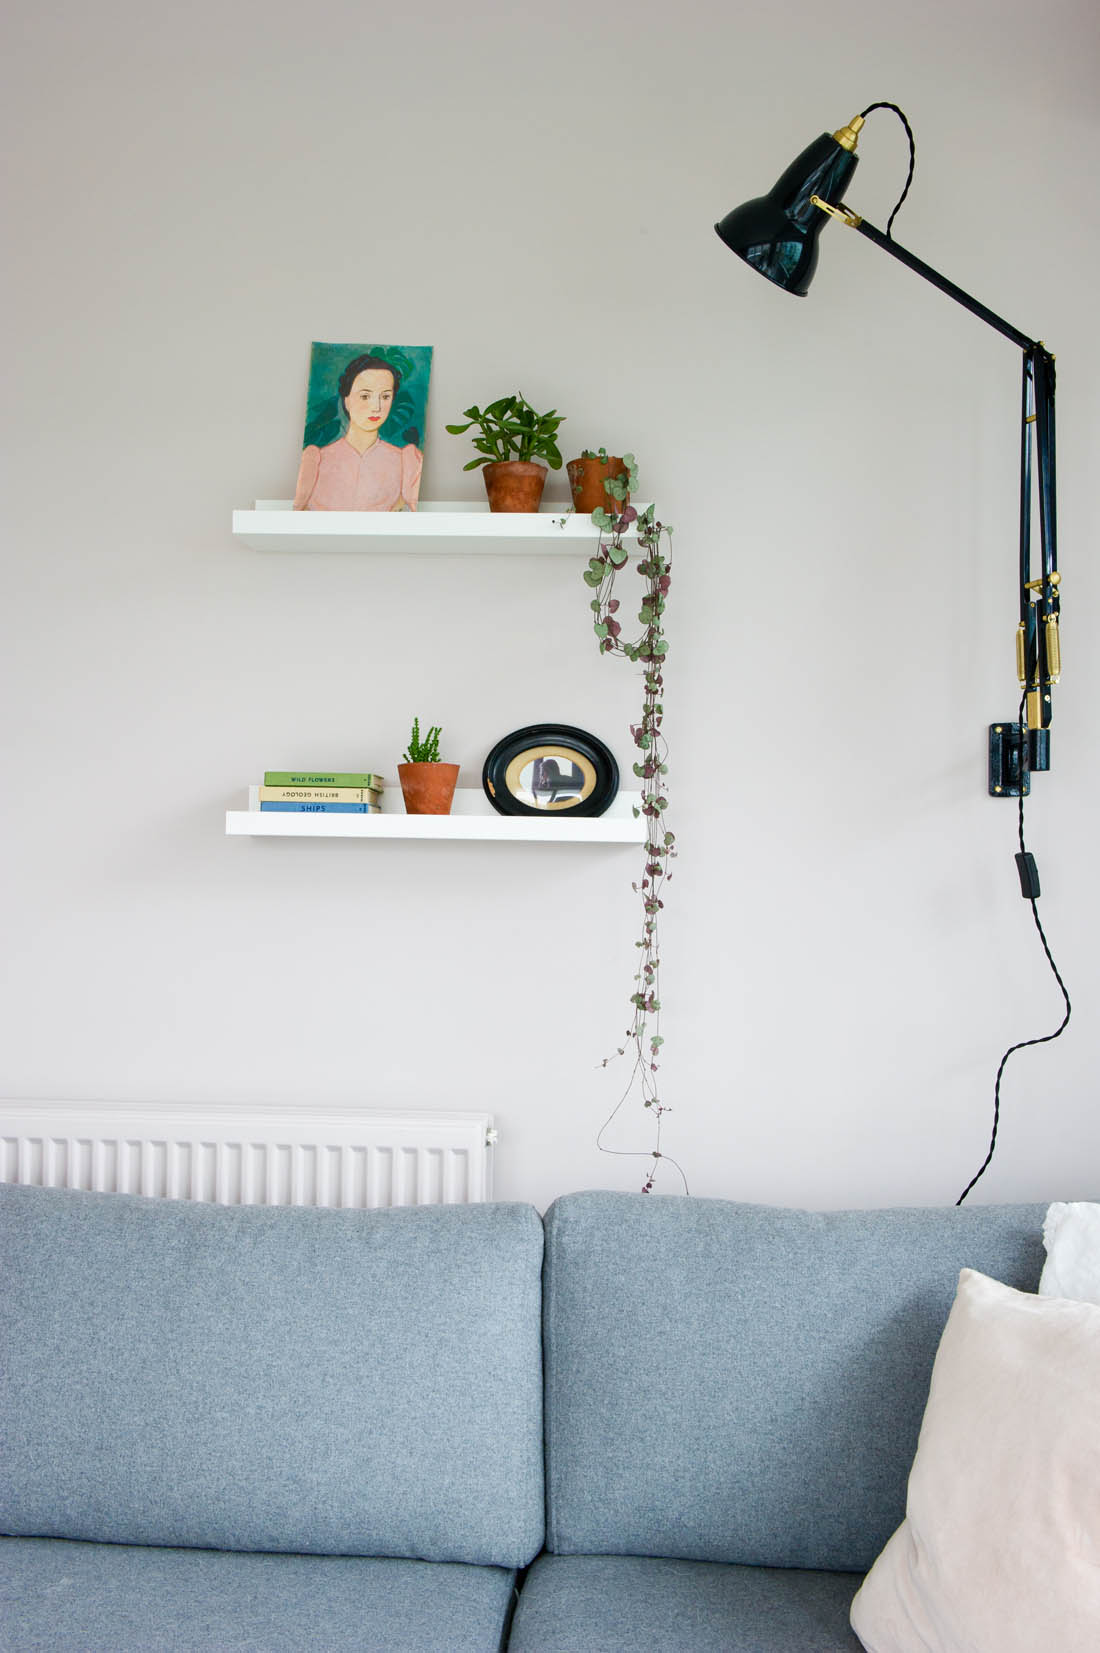 Living room makeover reveal - home of Katy Orme | Photography by katharinepeachey.co.uk | Apartment Apothecary